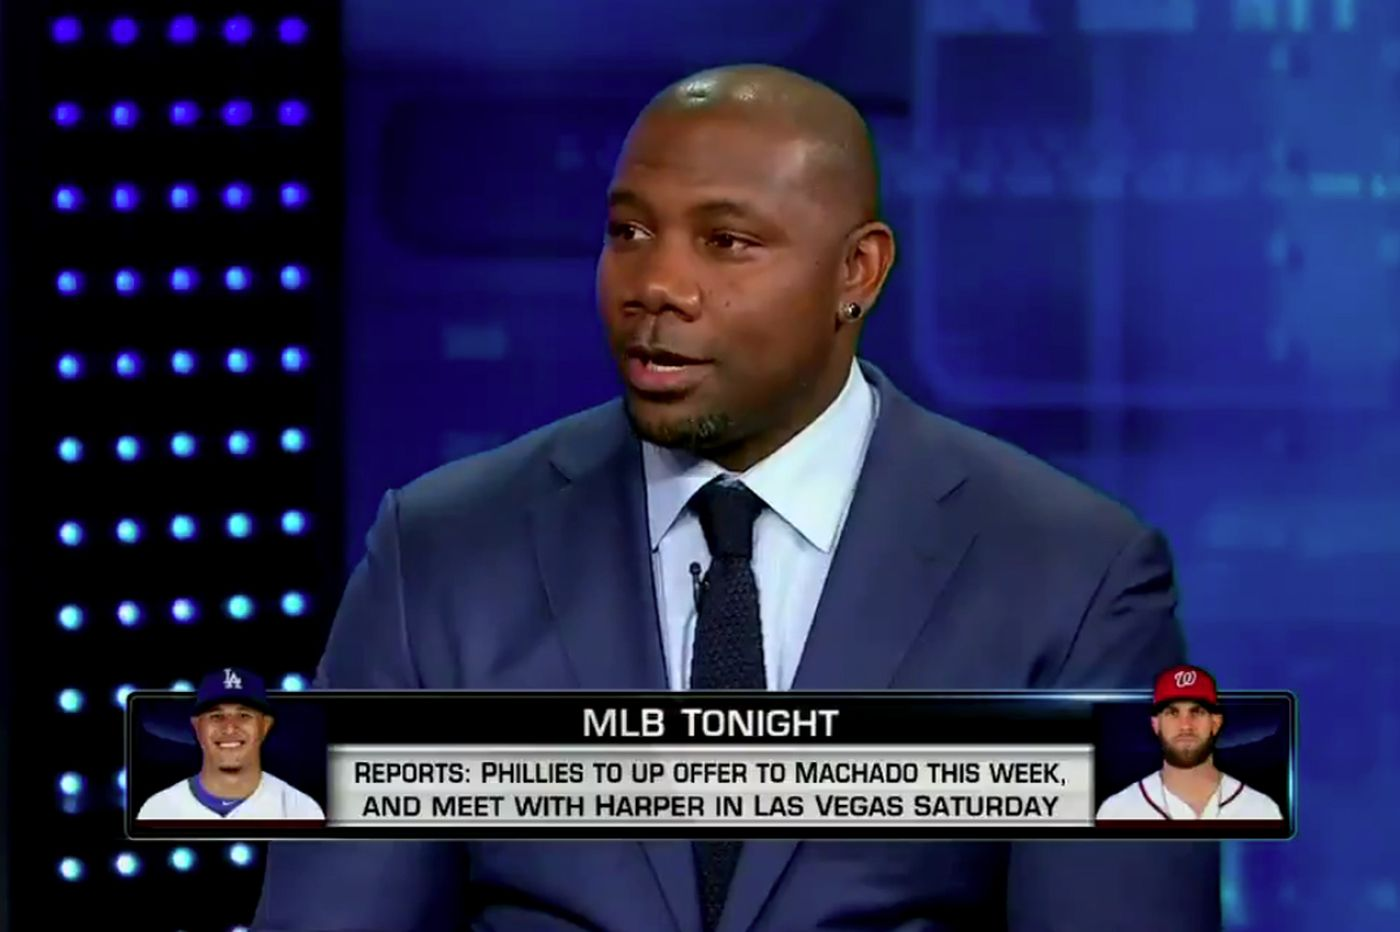 In TV opportunity, Ryan Howard has an interesting take on the Bryce Harper, Manny Machado sweepstakes